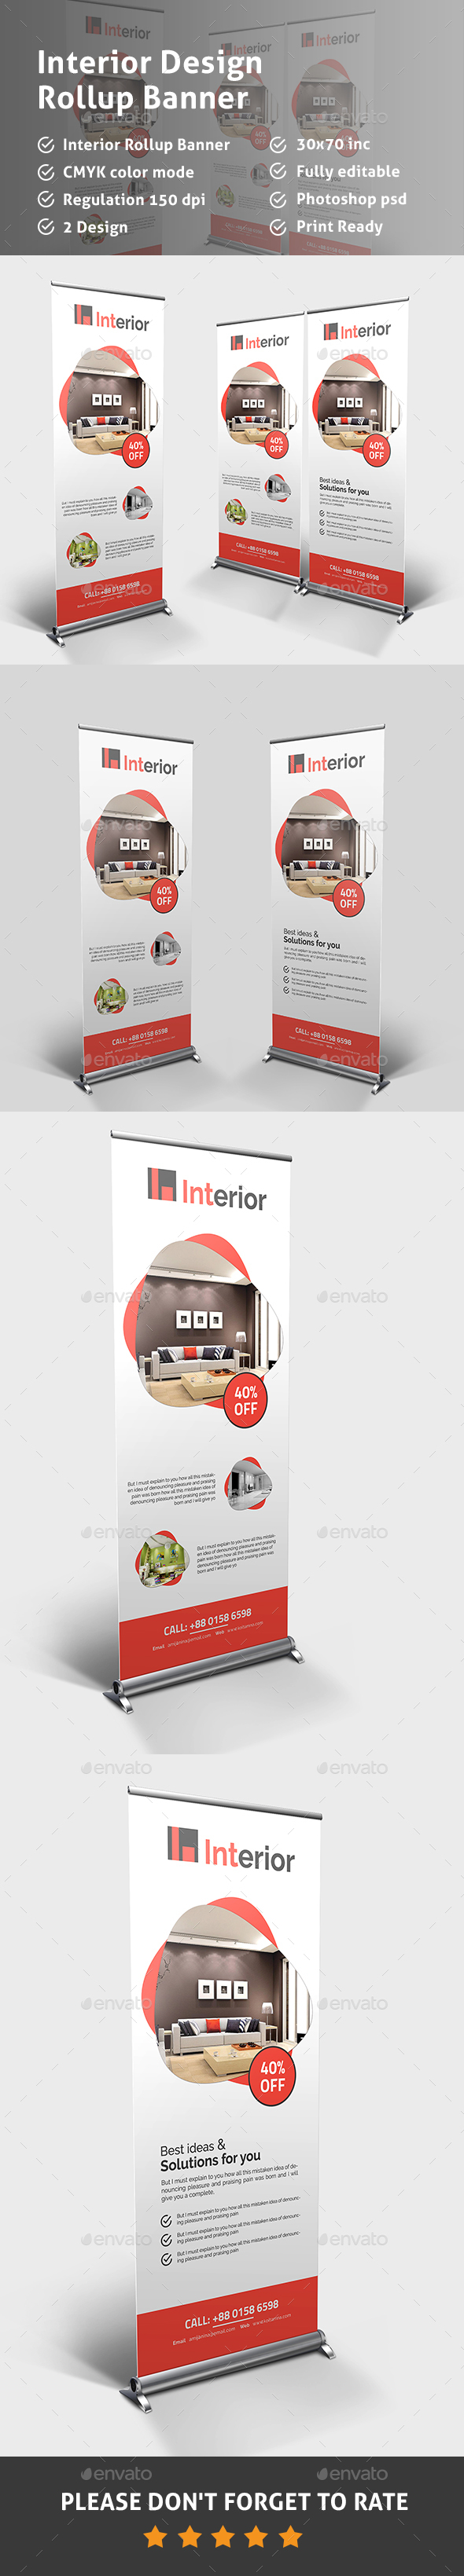 Interior Design Rollup Banner - Signage Print Templates